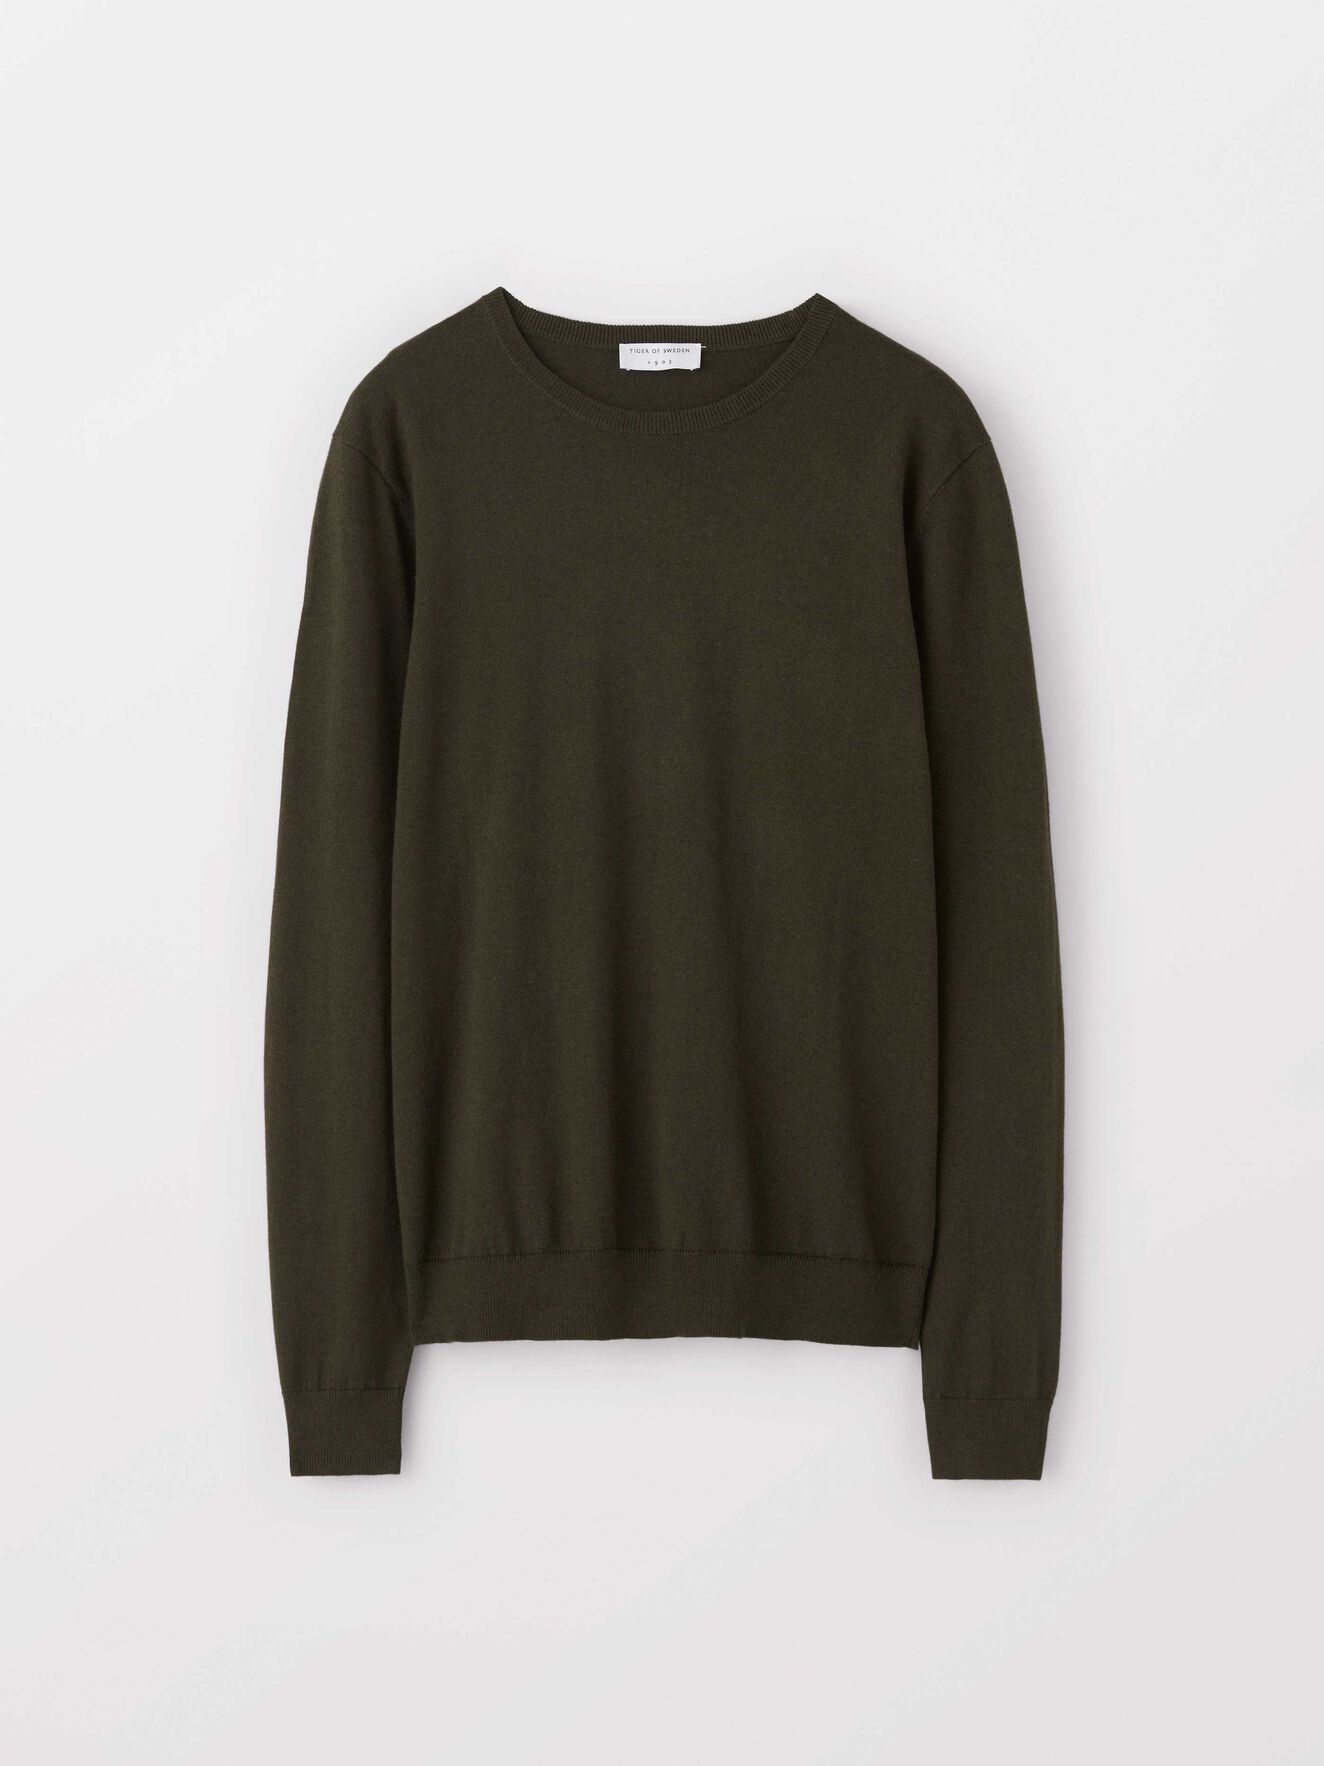 Matias Cs Pullover in Dark Olive from Tiger of Sweden